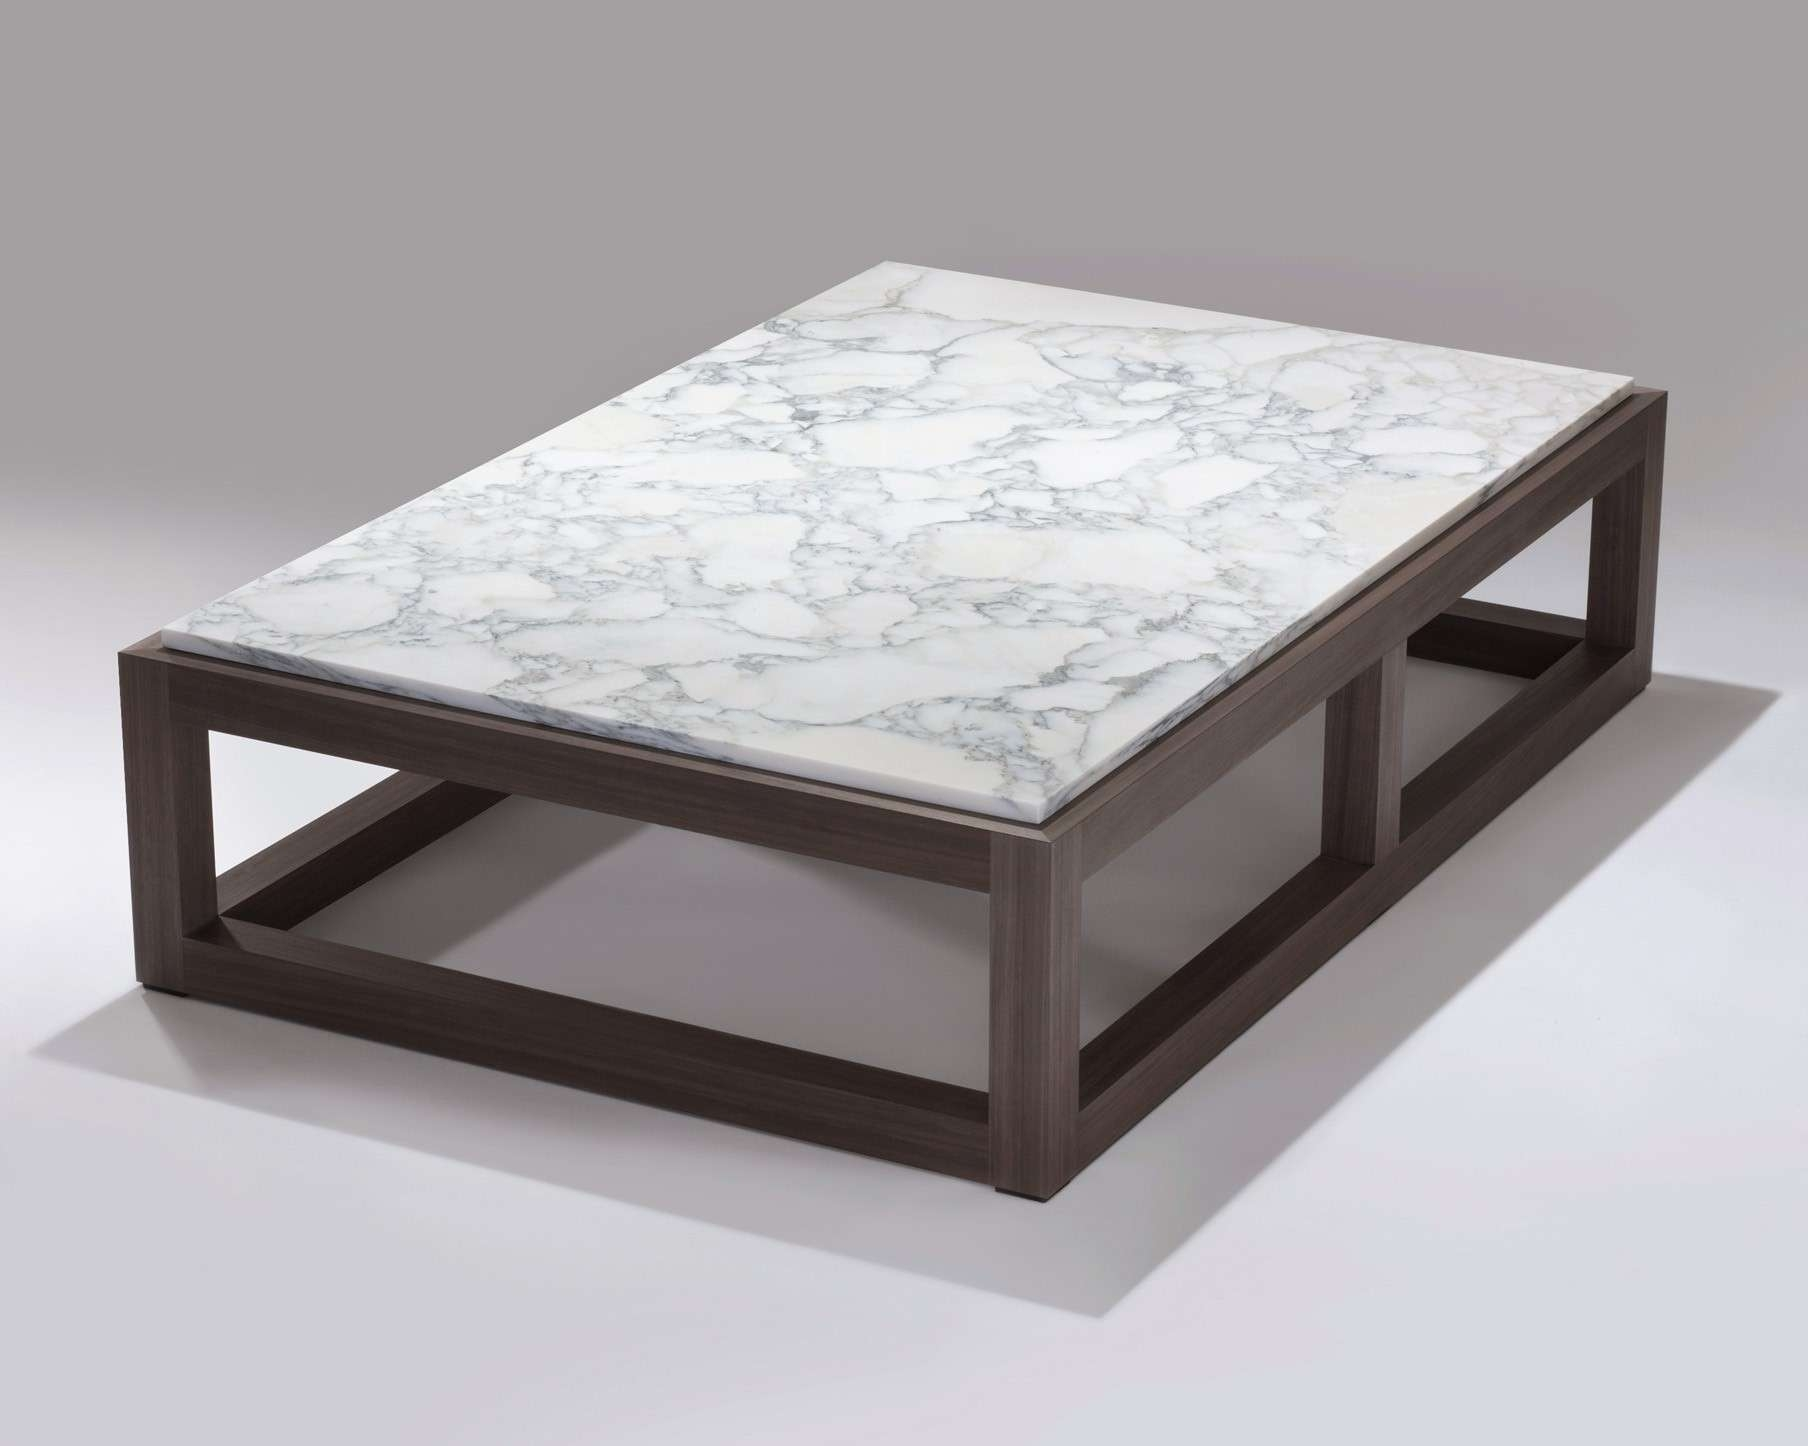 Coffee Tables : Square Stone Top Coffee Table Material Leather Pertaining To Popular Square Stone Coffee Tables (View 10 of 20)